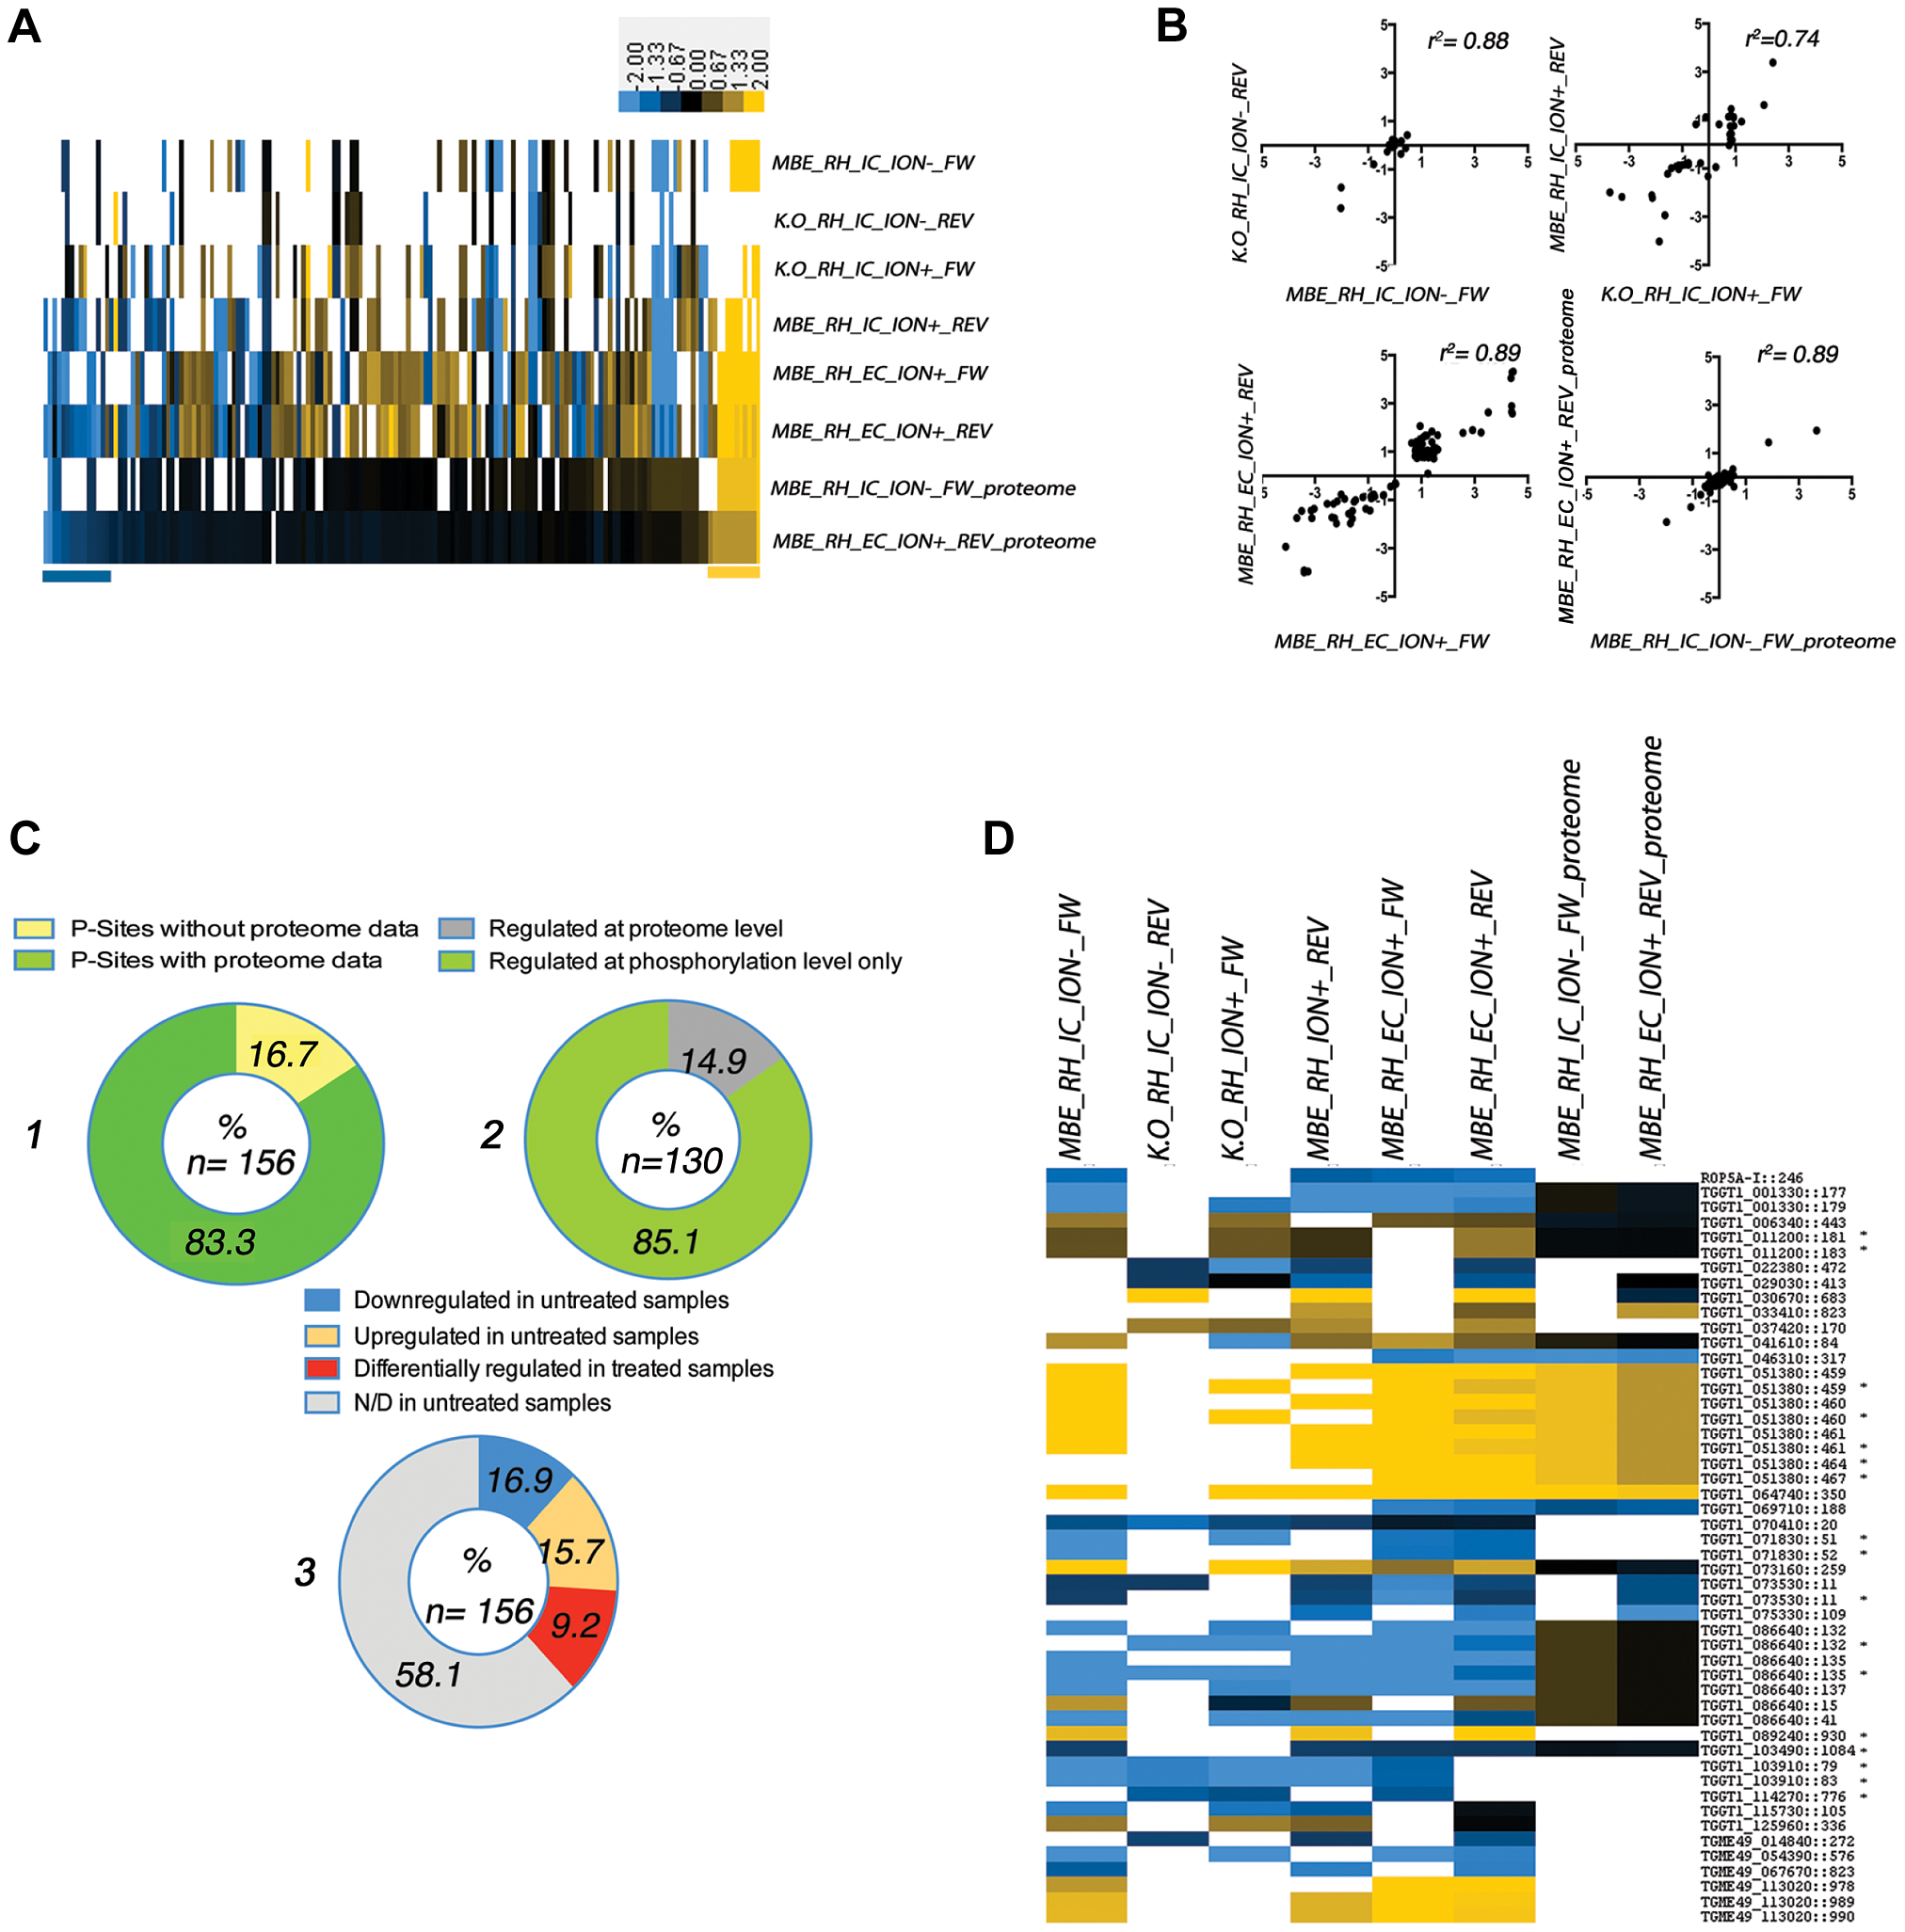 Analysis of differential phosphorylation site usage and protein abundance in WT and TgCDPK3 mutant parasites (see <em class=&quot;ref&quot;><b>Figure 1</b></em> and <em class=&quot;ref&quot;>Figure S1</em> for a description of experimental conditions).